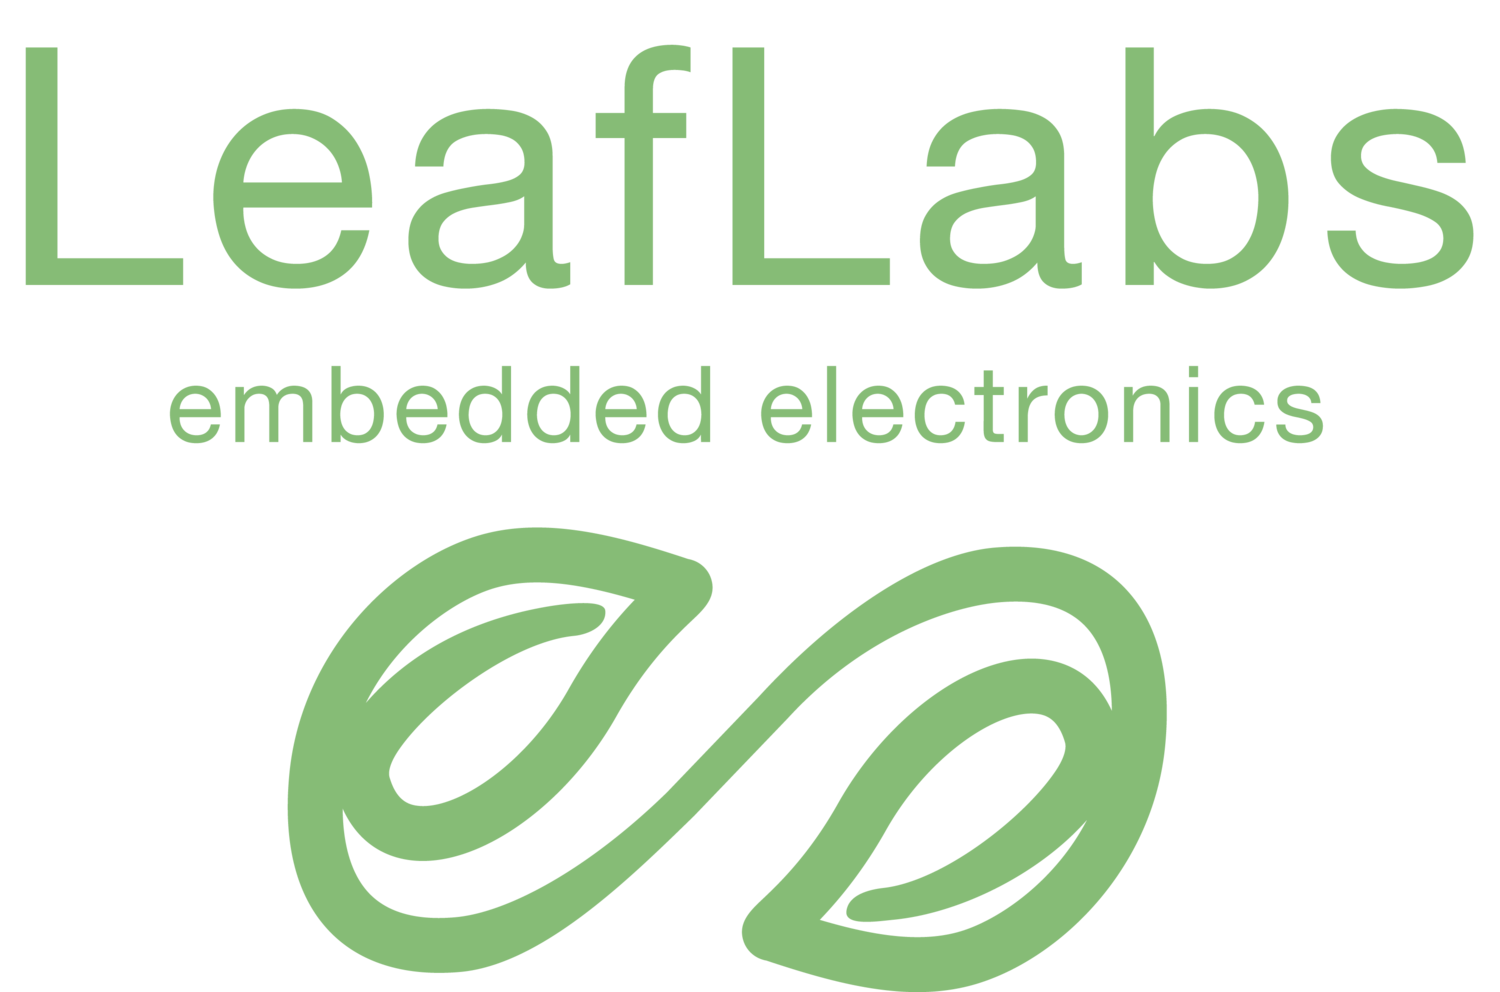 LeafLabs